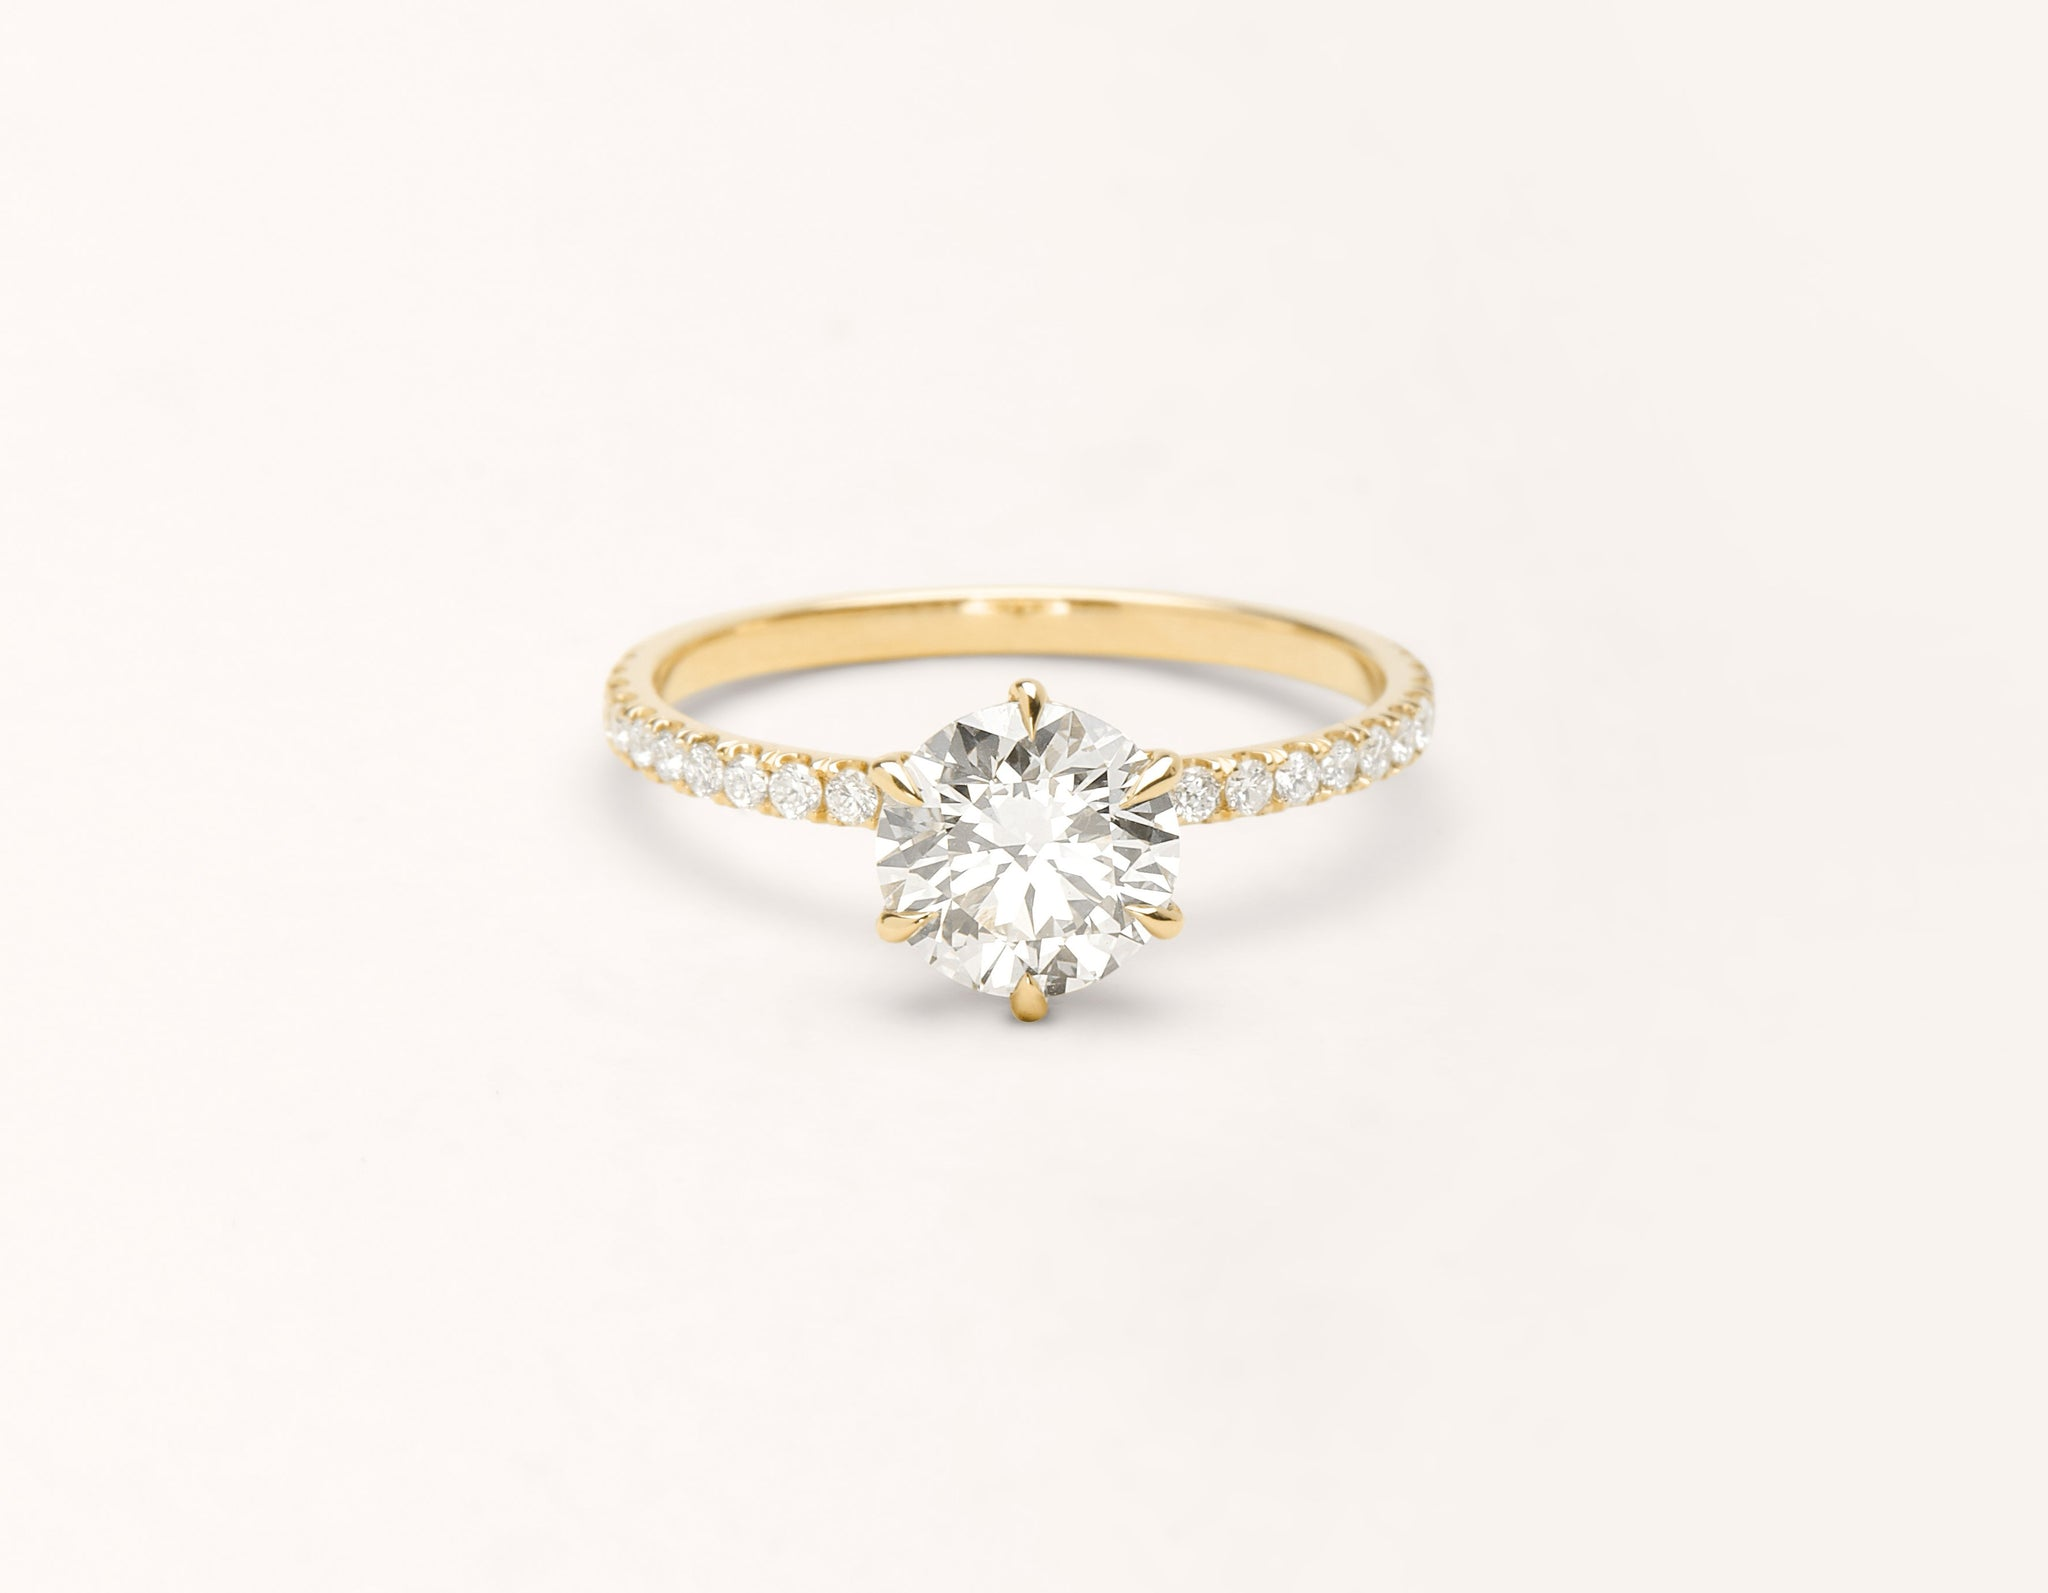 Minimalist 18k solid yellow gold The Solitaire pave engagement ring round brilliant cut 1 ct diamond Vrai and Oro